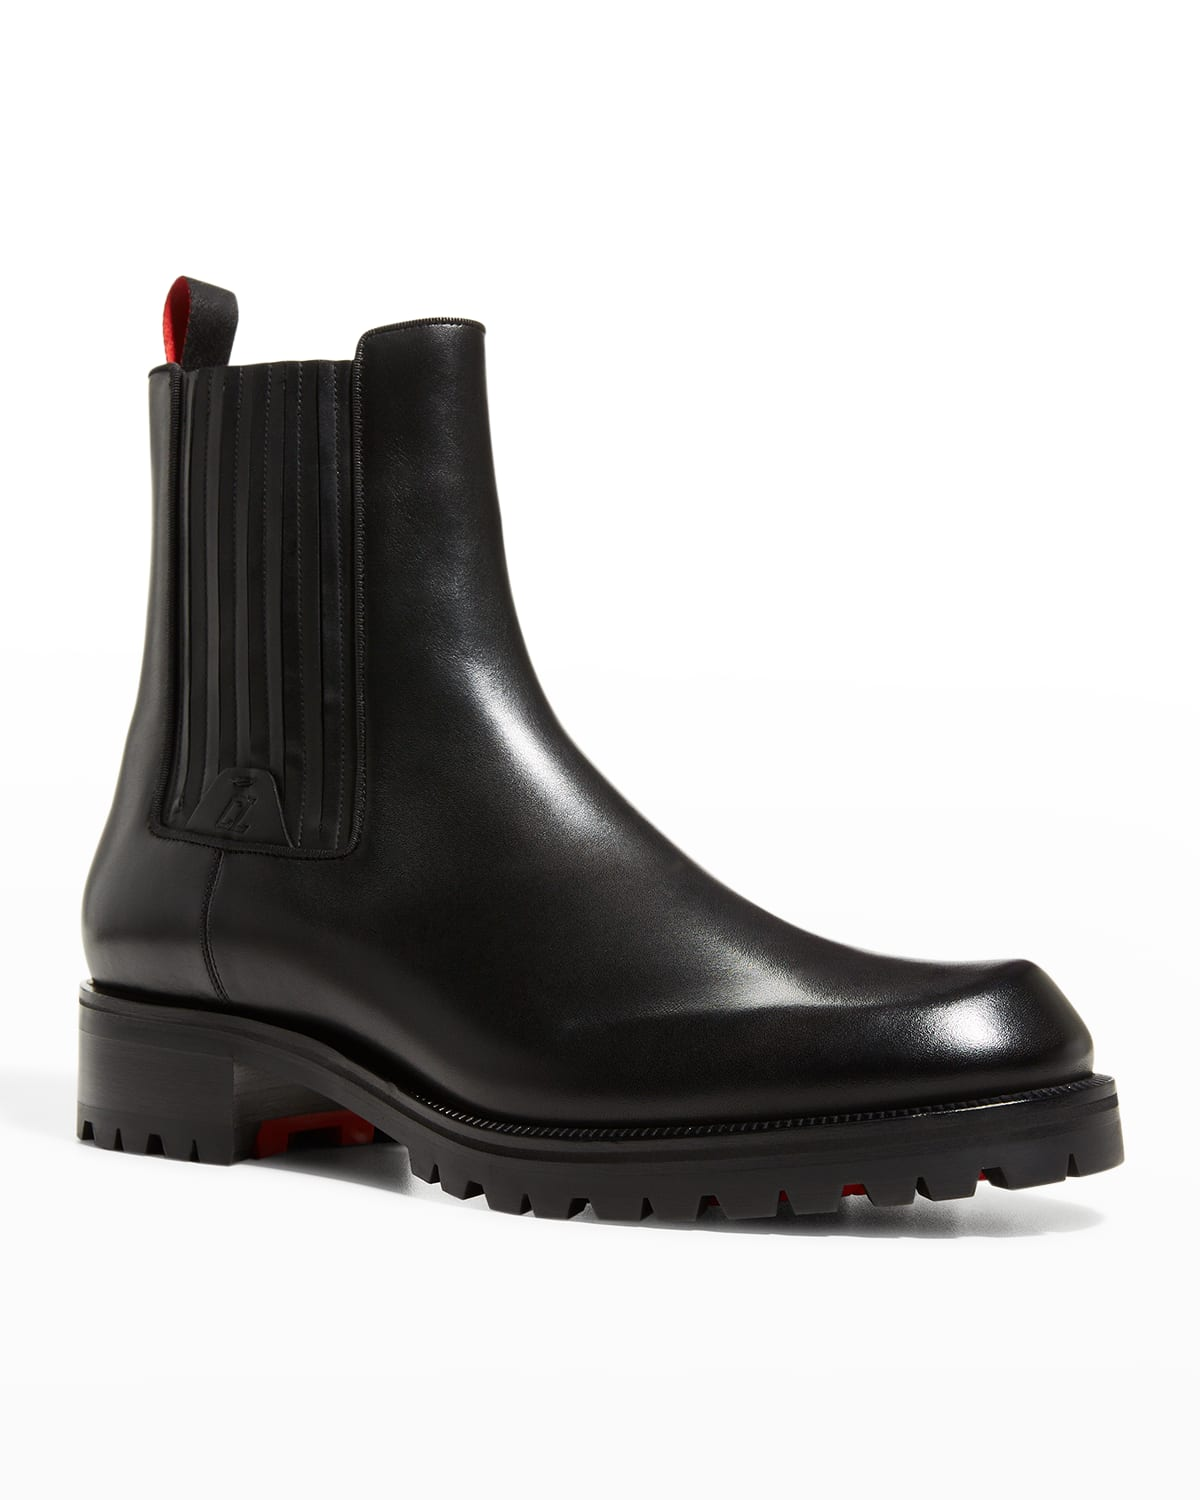 Men's Pleated Leather Red-Sole Chelsea Boots